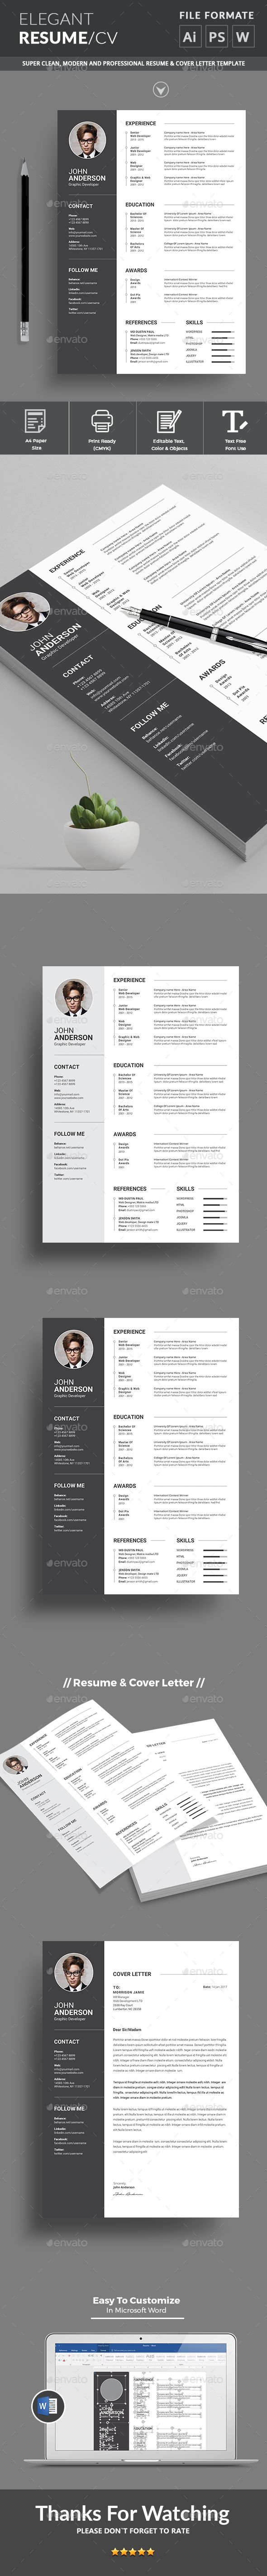 35 Best Social Resume Images On Pinterest